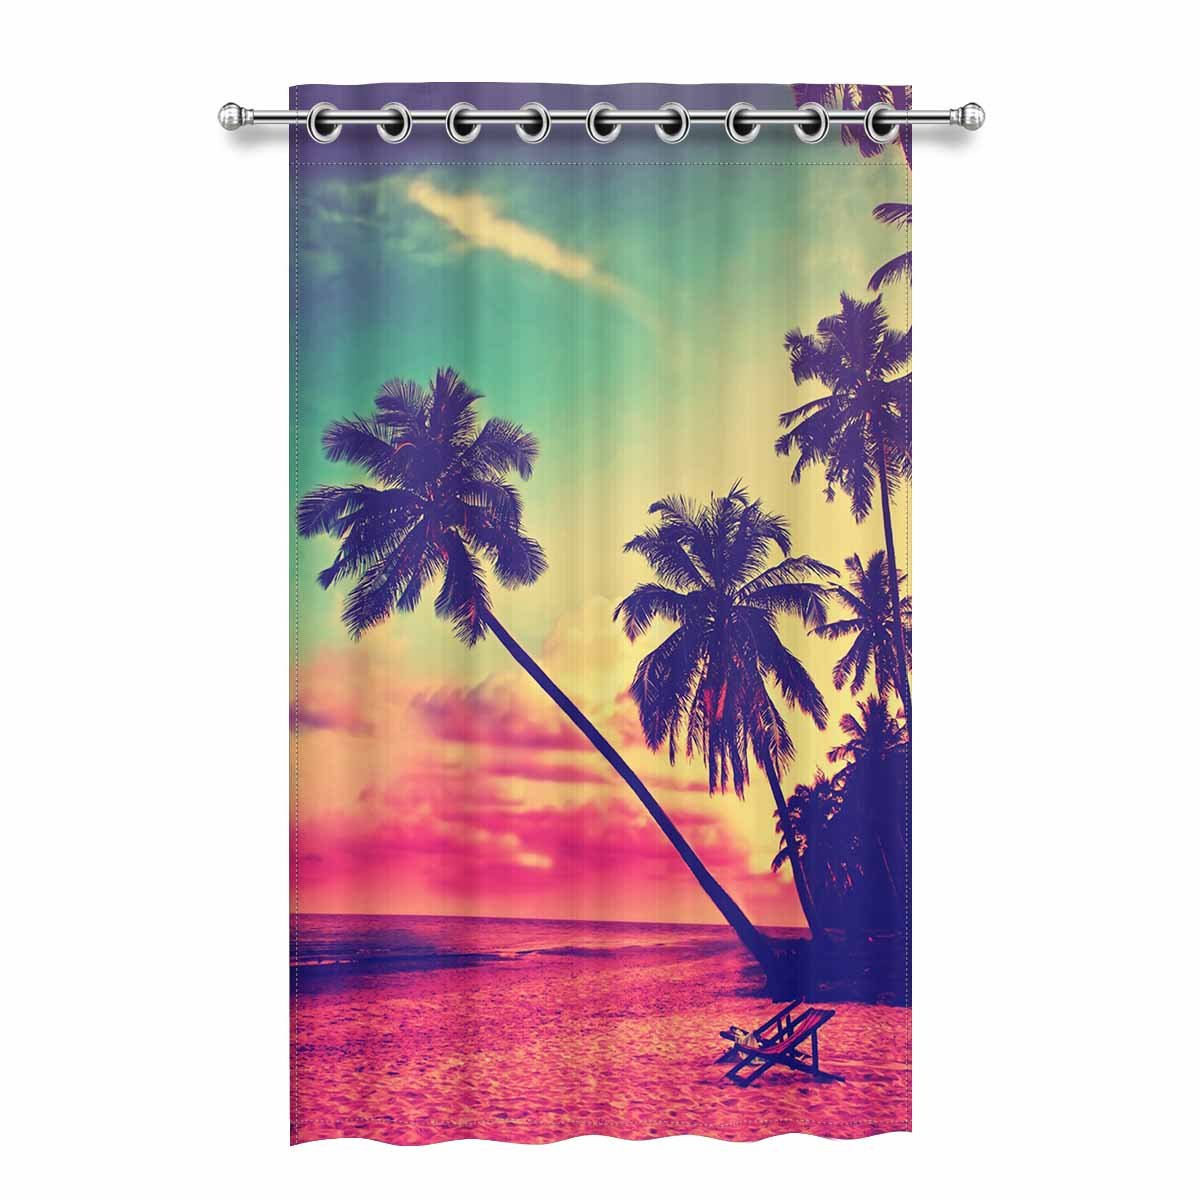 yusdecor beautiful tropical beach blackout window curtain drapes bedroom living room kitchen curtains 52x84 inch